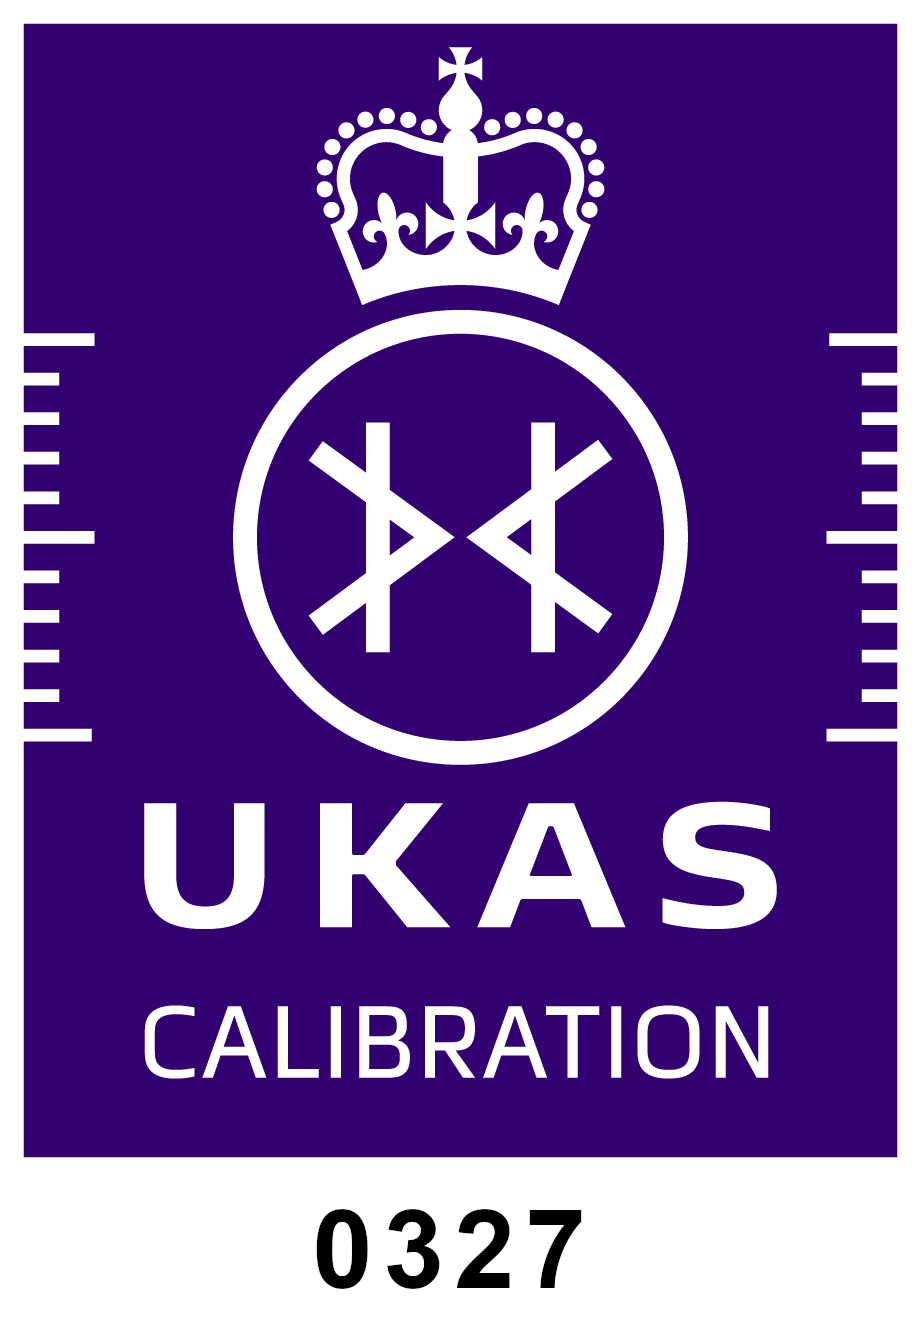 Bowmonk Ltd is a UKAS accredited calibration laboratory No. 0327